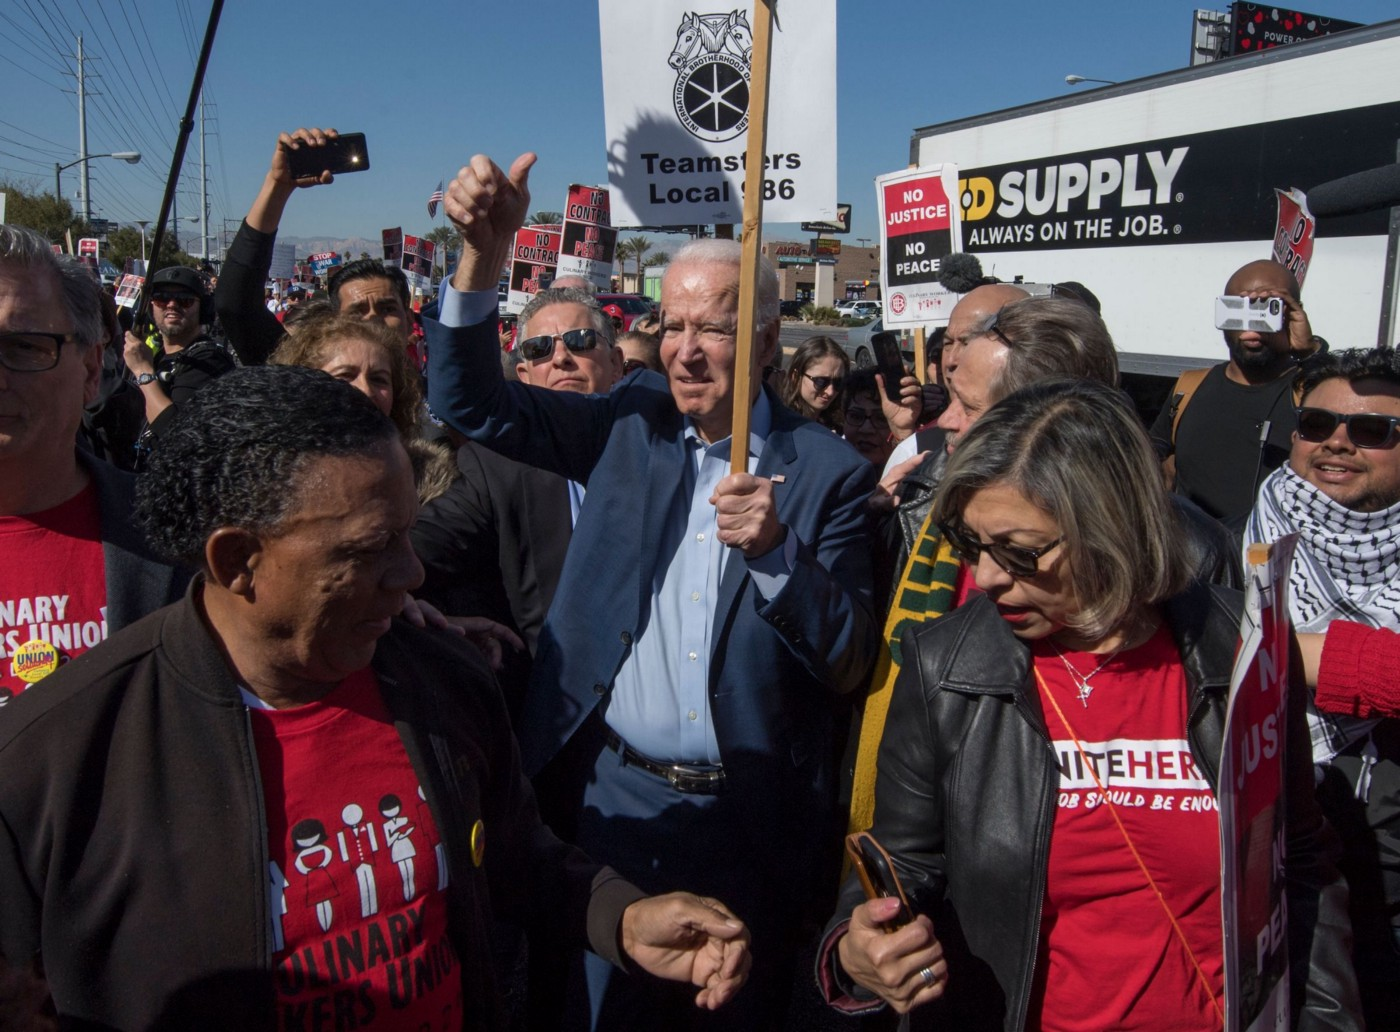 Joe Biden holding a pro-union sign and giving a raised thumbs-up, surrounded by pro-union demonstrators outdoors.